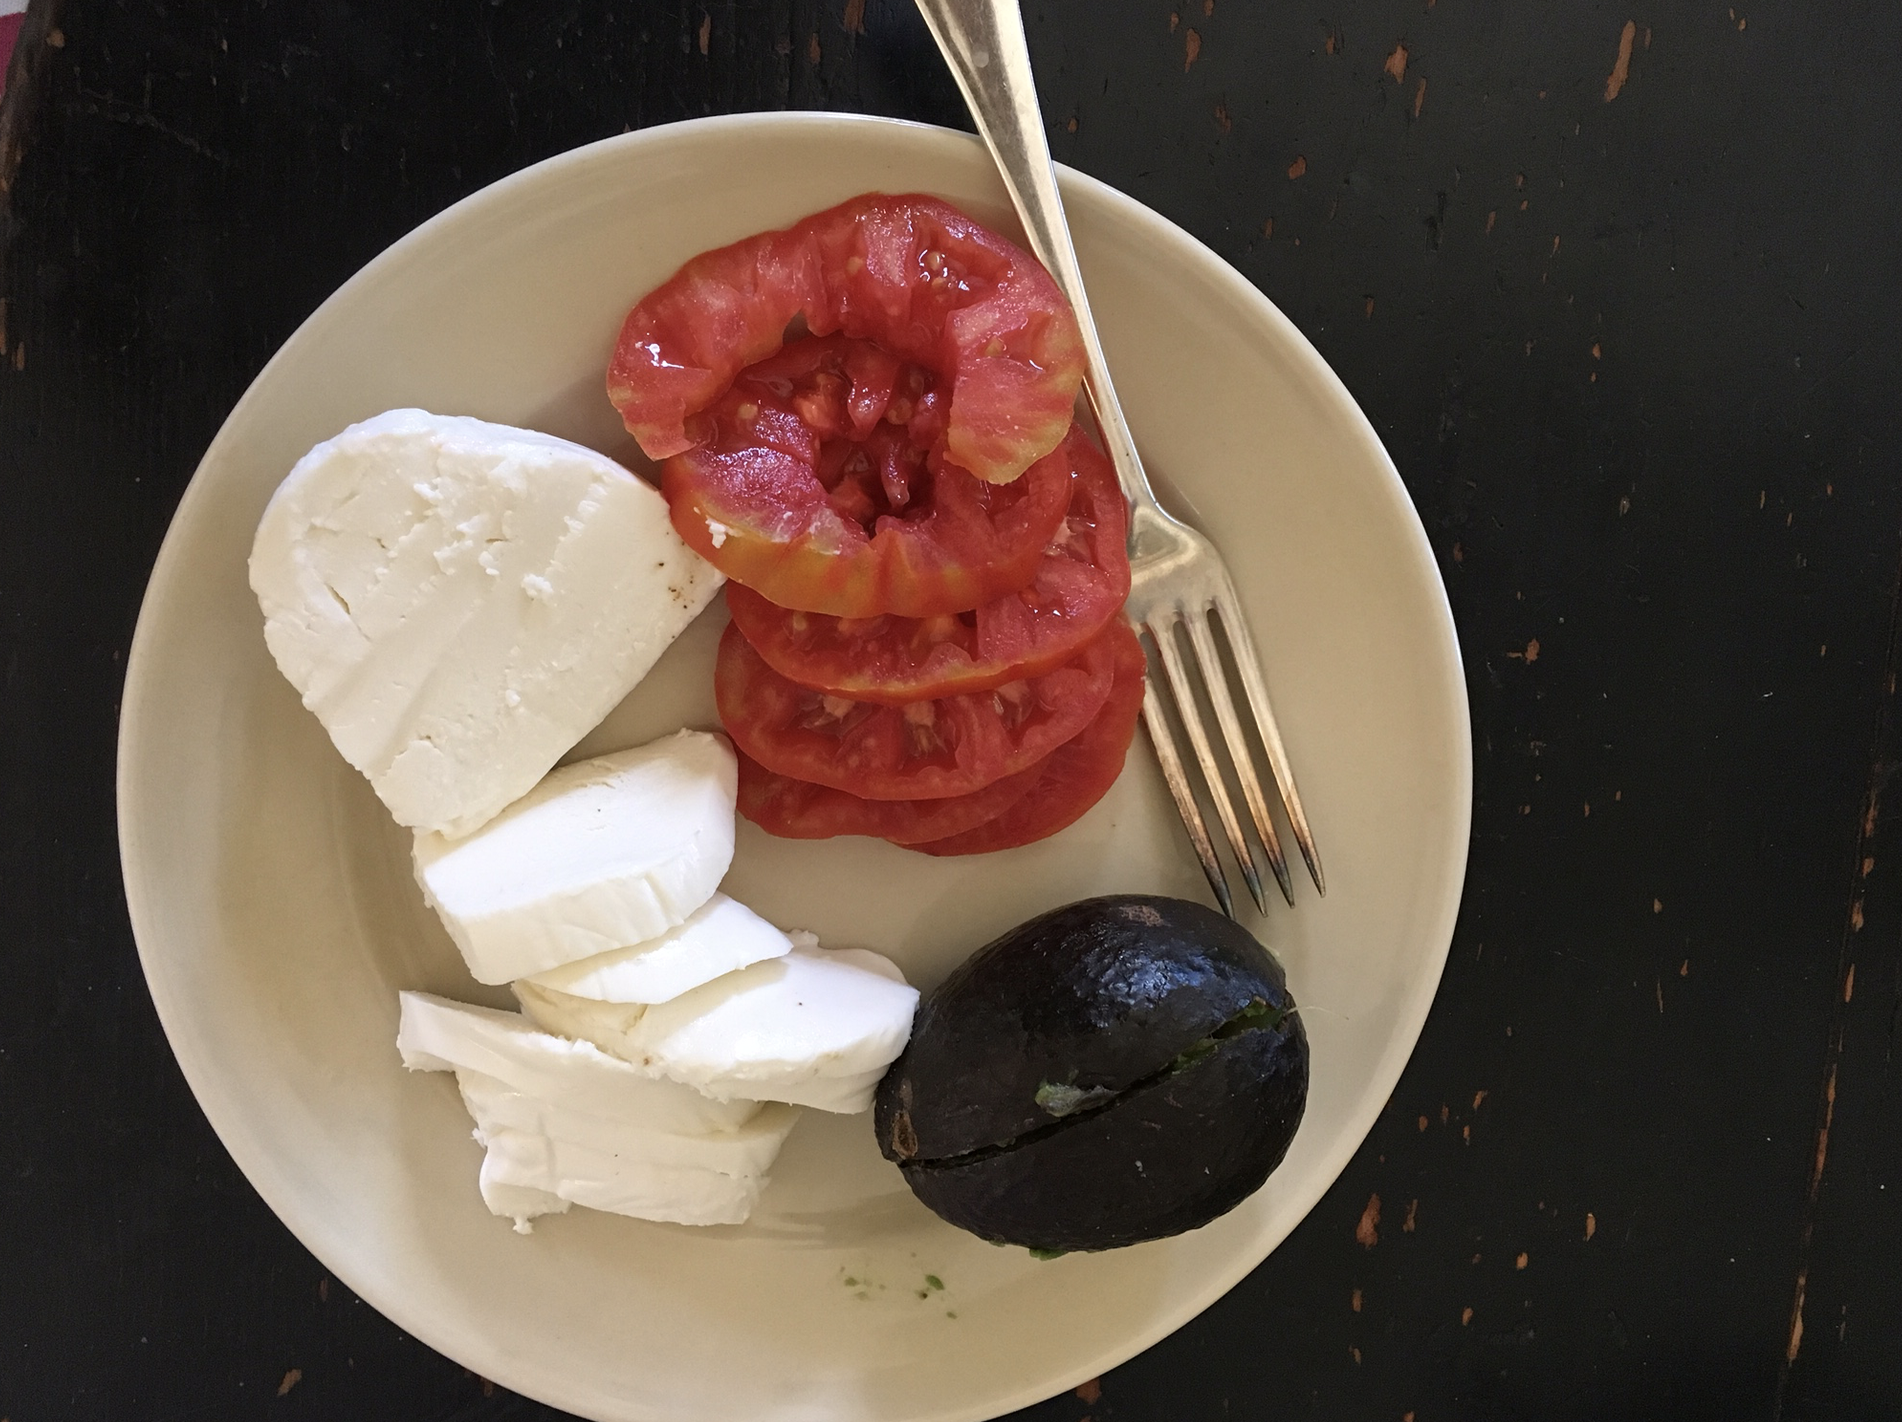 A very, very ripe tomato and avocado caught in the nick of time with fresh mozzarella.